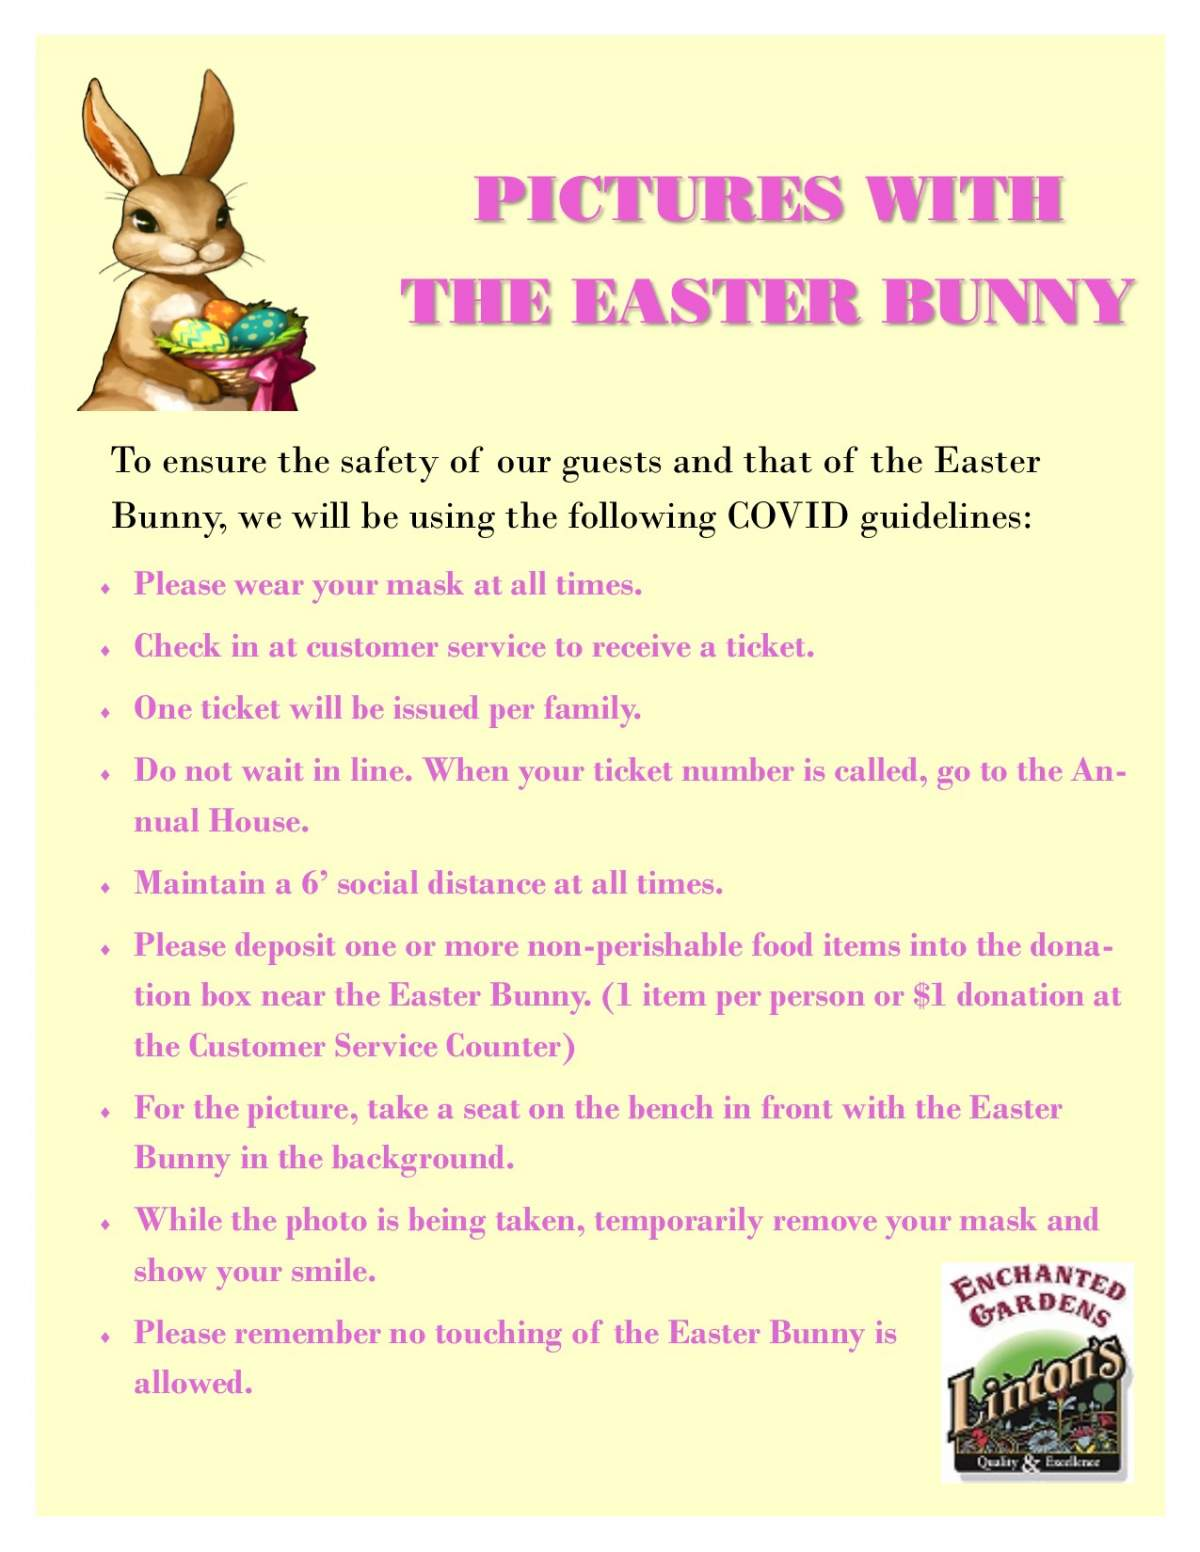 Easter Bunny COVID Guidelines